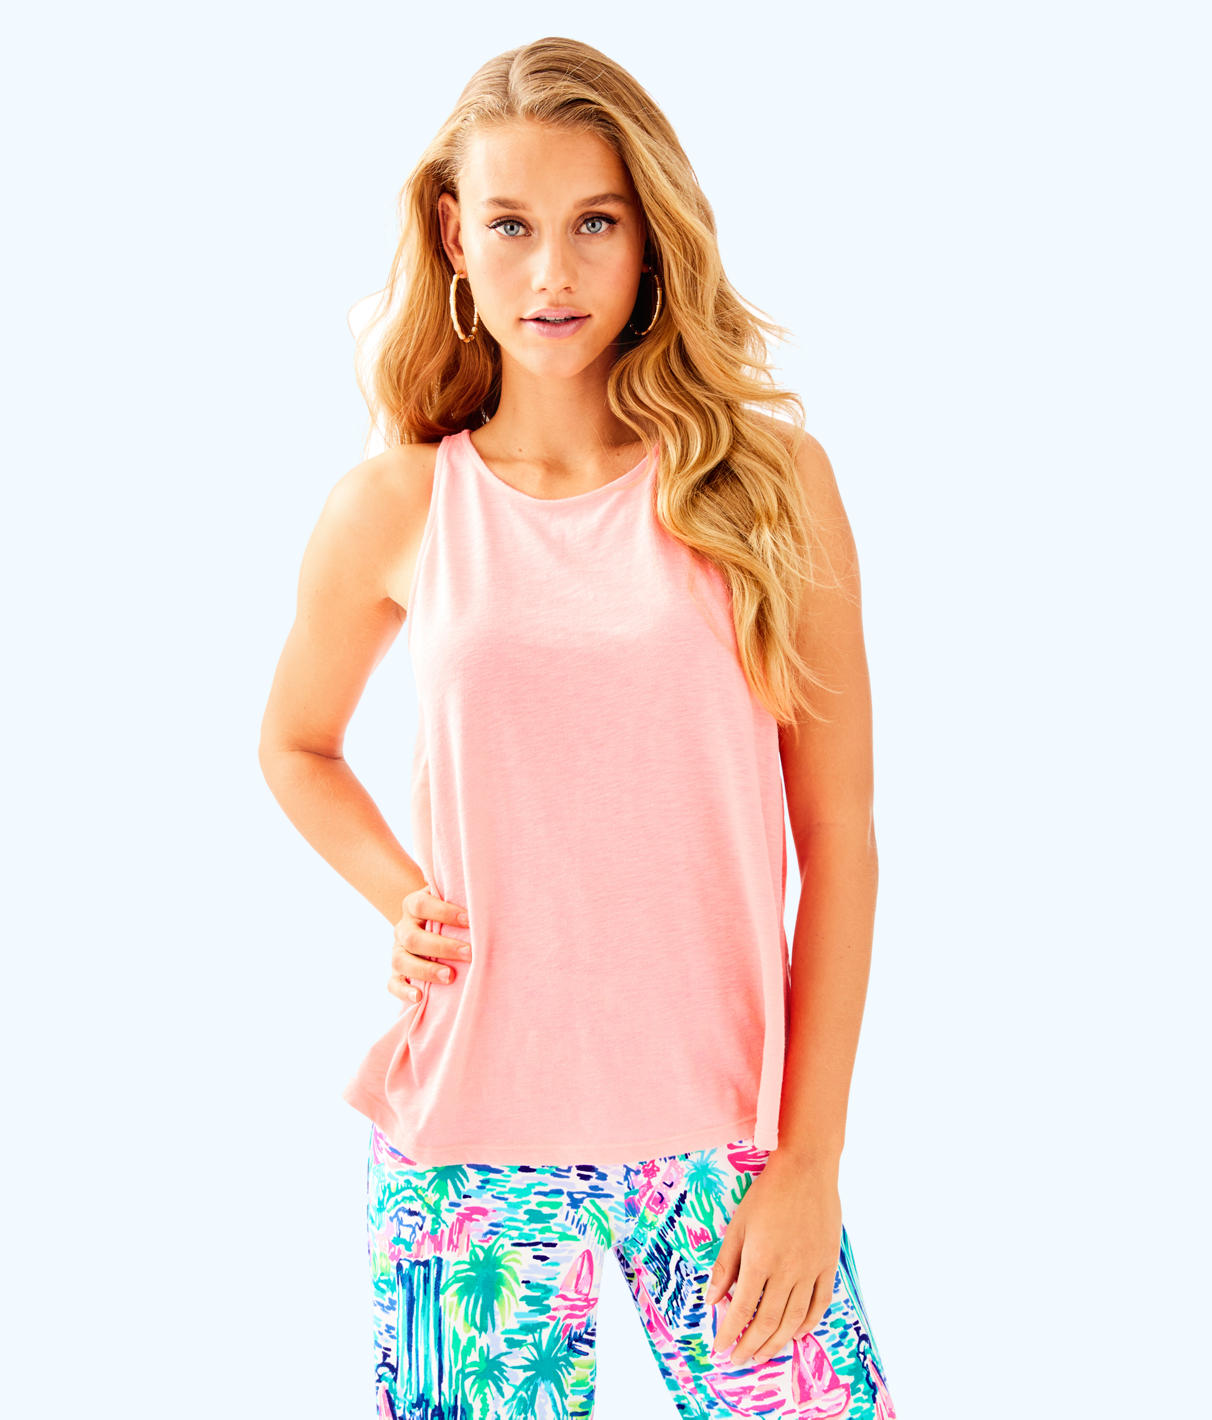 Lilly Pulitzer Lilly Pulitzer Womens Rexi Top